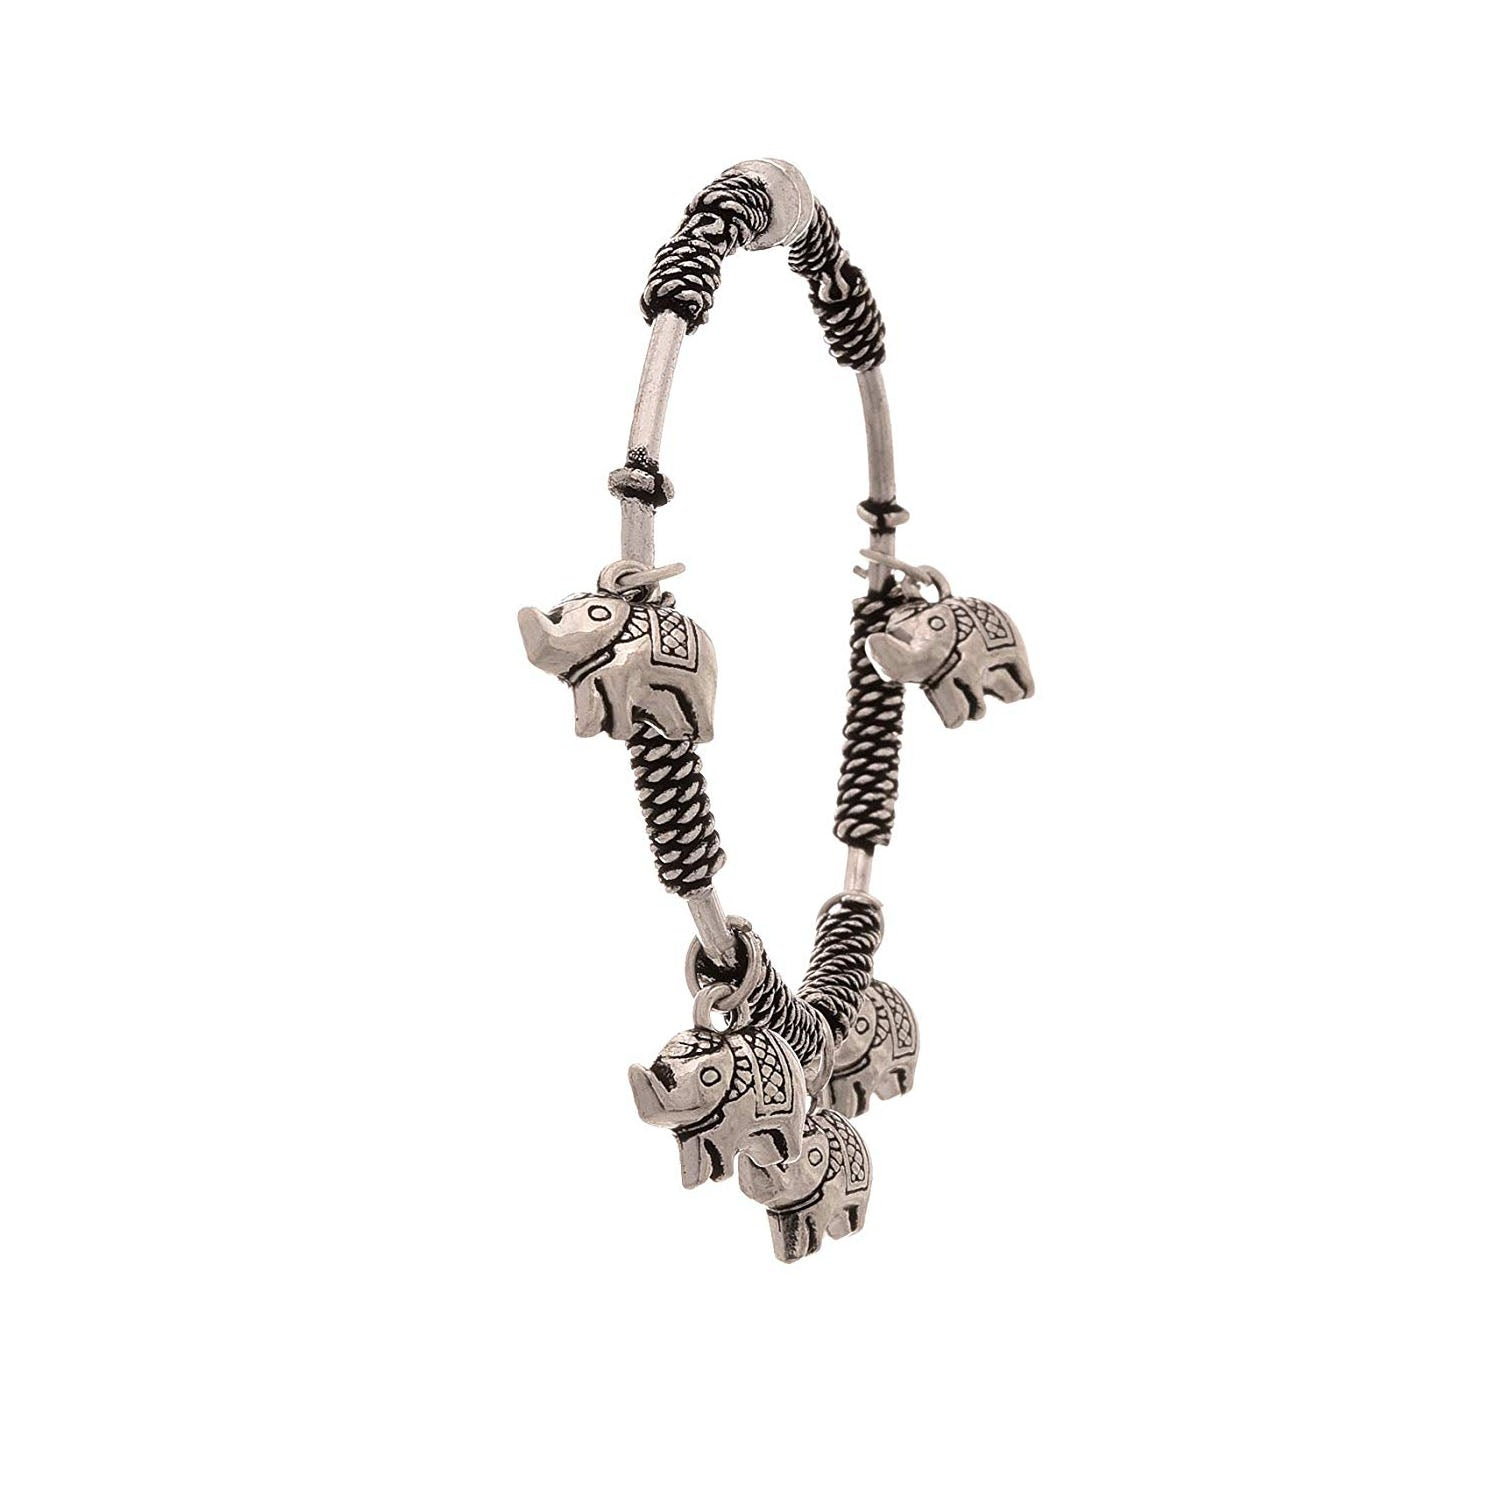 Traditional Ethnic Handmade German Silver Plated Oxidised Elephant Designer Cuff & Kadaa for Women & Girls.